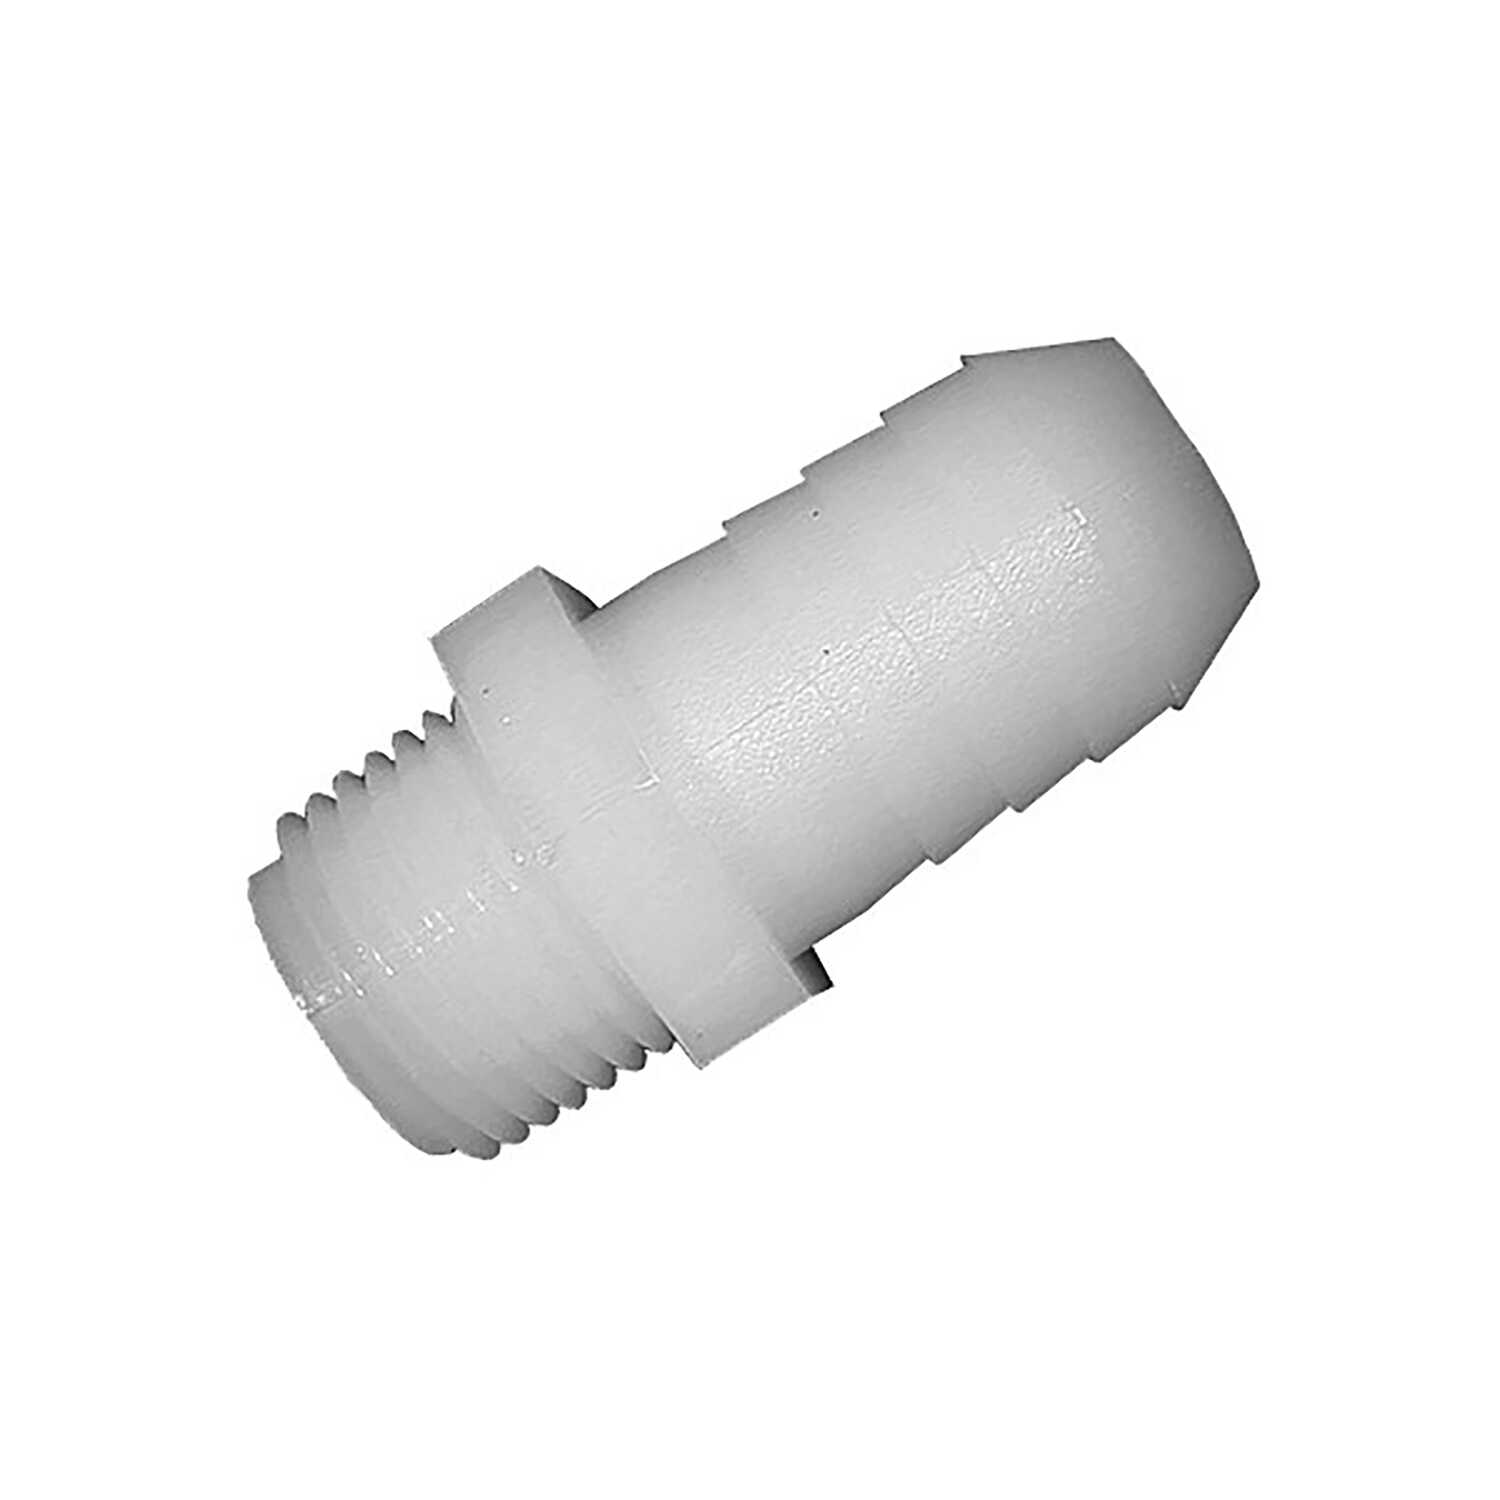 Green Leaf  Nylon  1/8 in. Dia. x 3/8 in. Dia. Adapter  1 pk